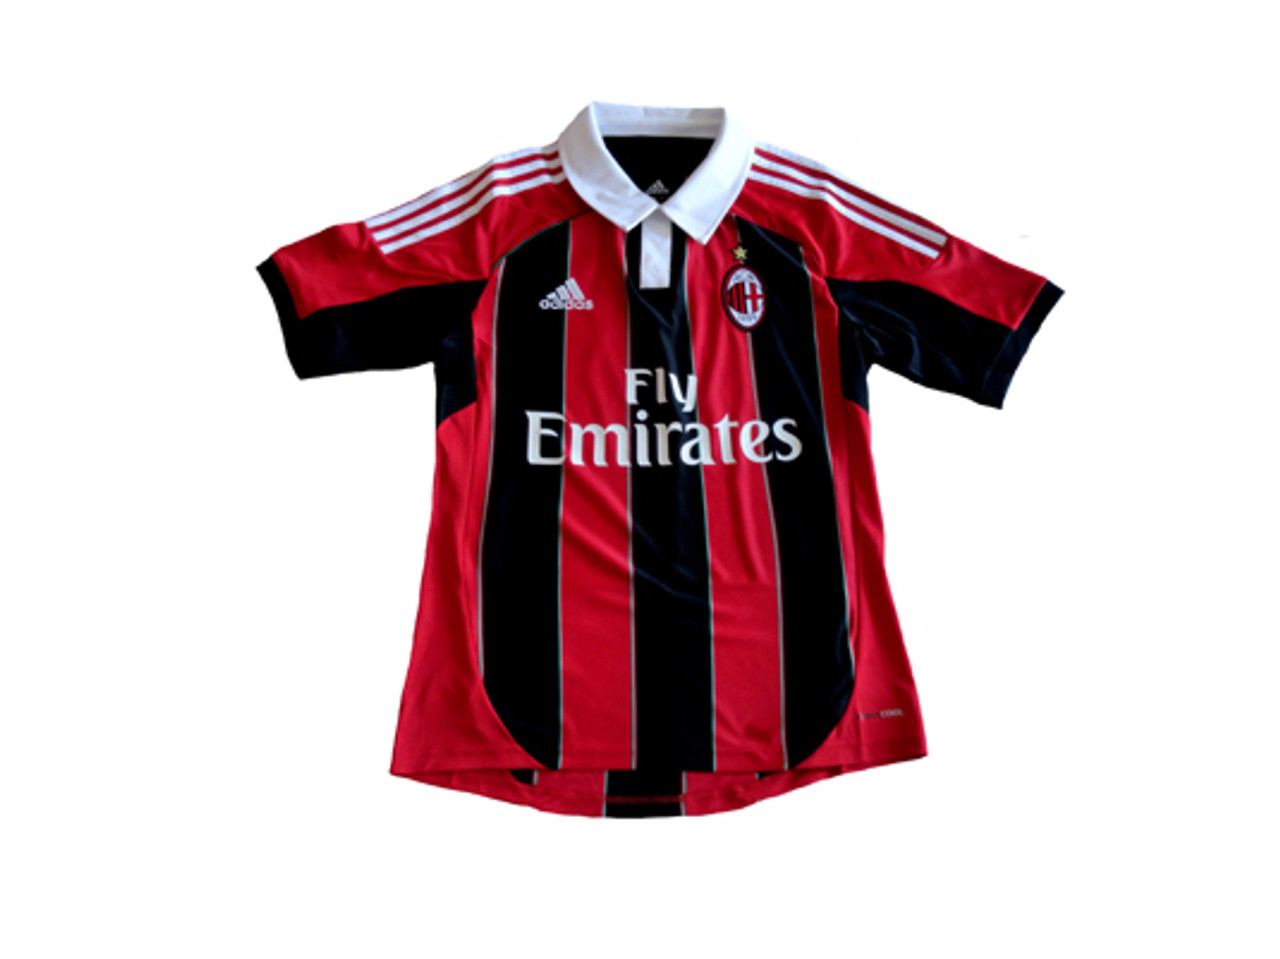 finest selection cb441 0d2aa ADIDAS AC MILAN 2013 HOME JERSEY